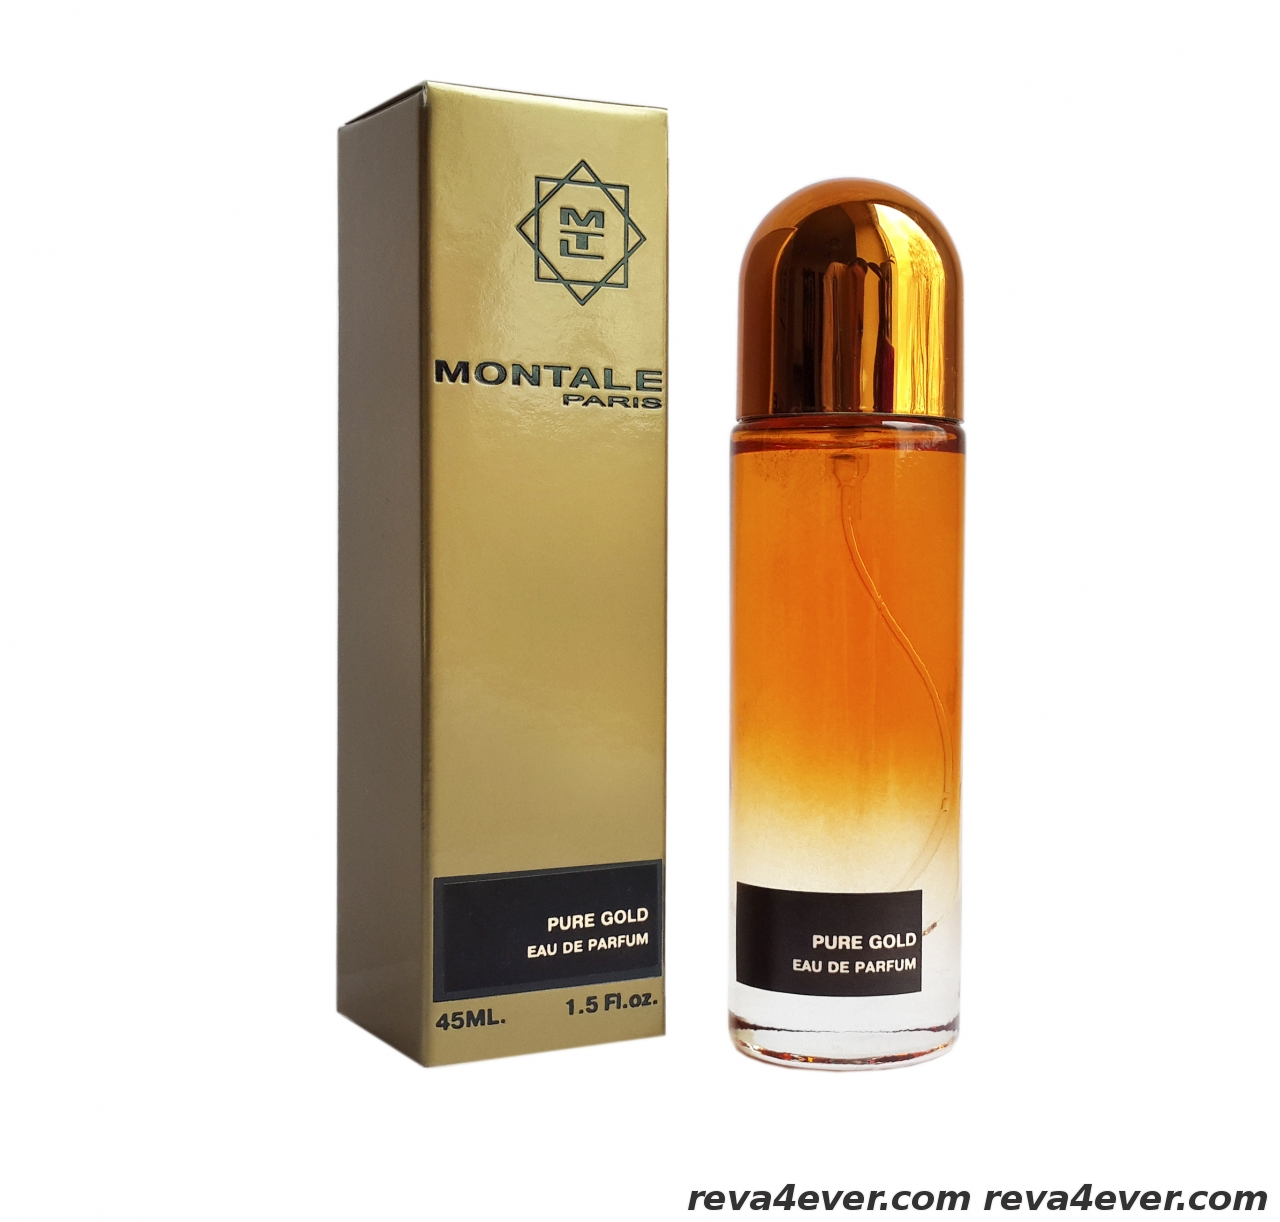 Montale Pure Gold edp 45m